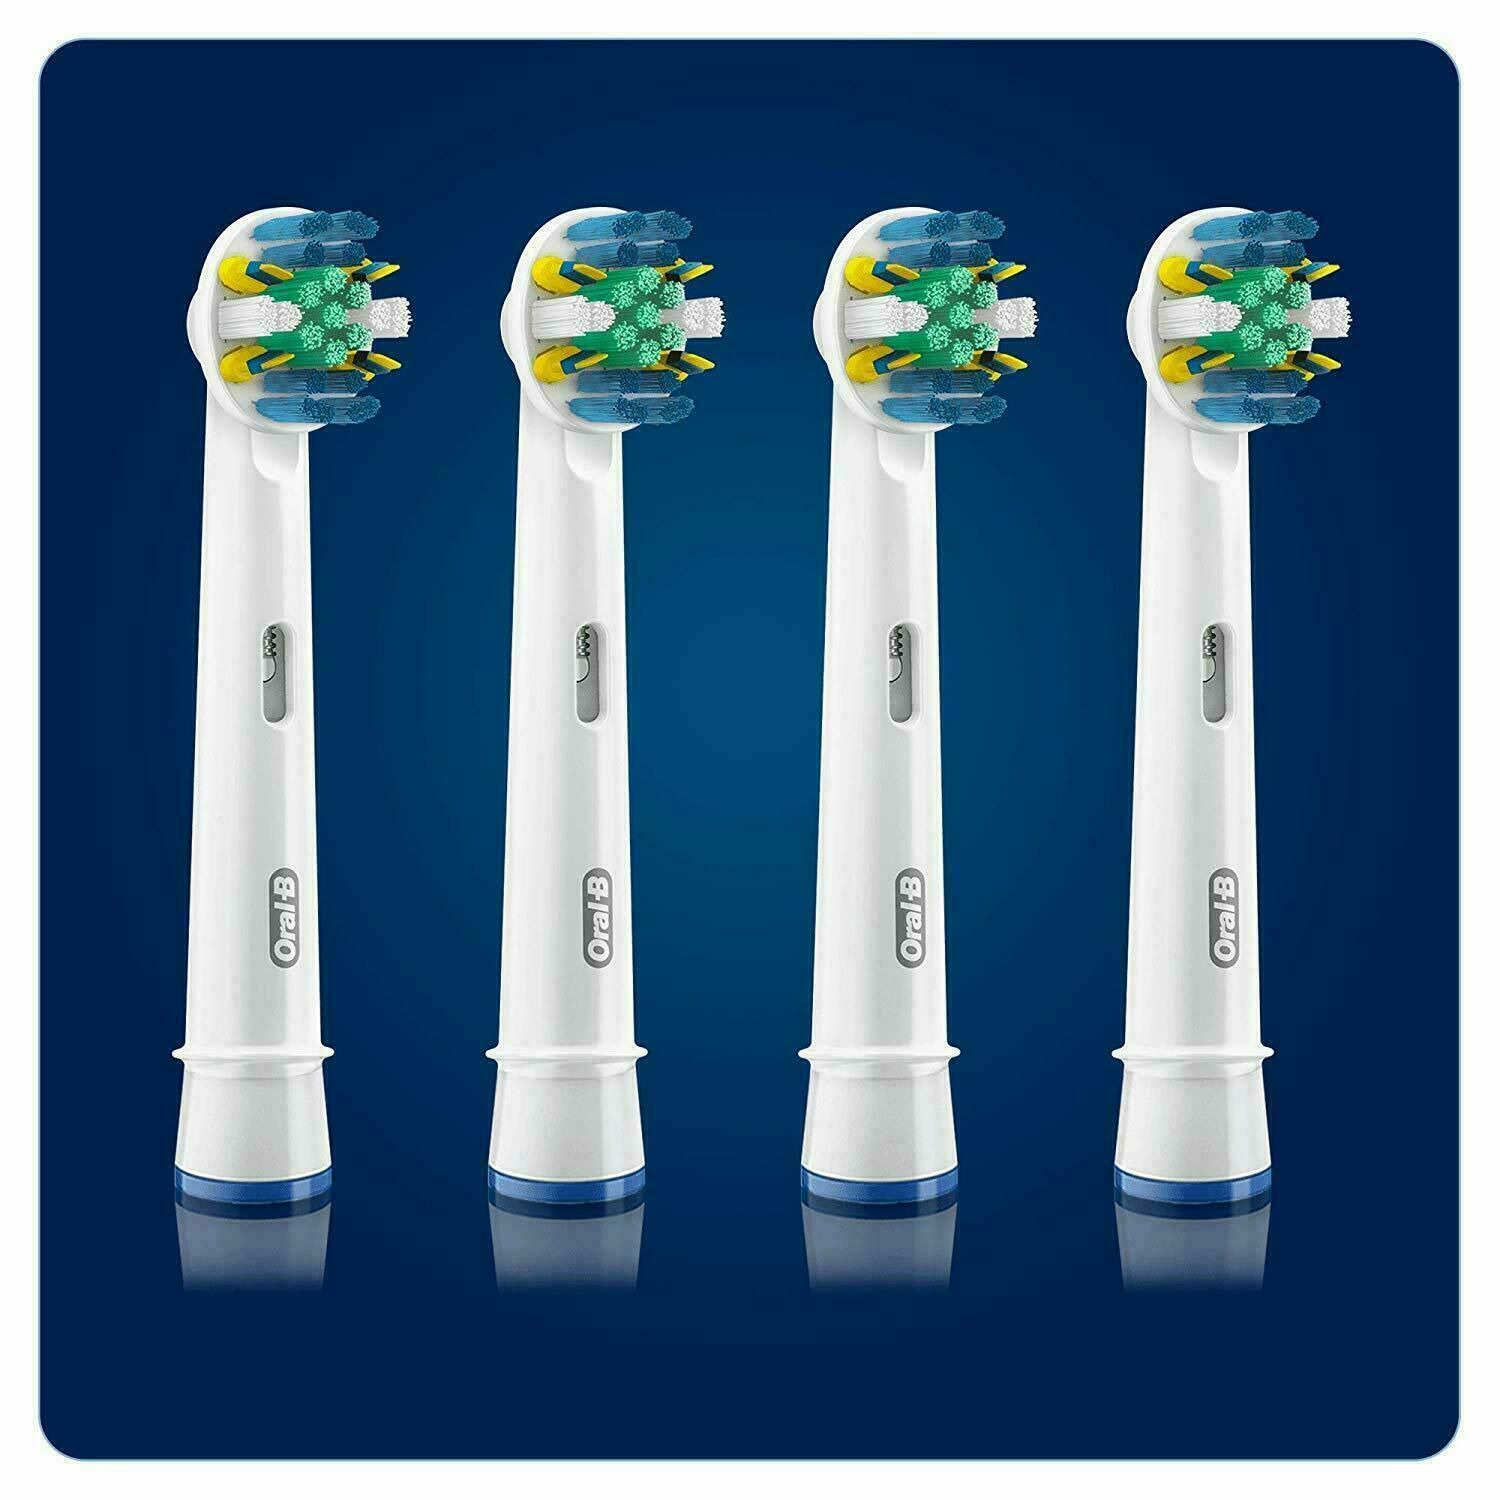 Oral-B Floss Action Replacement Brush Heads - 4 Heads